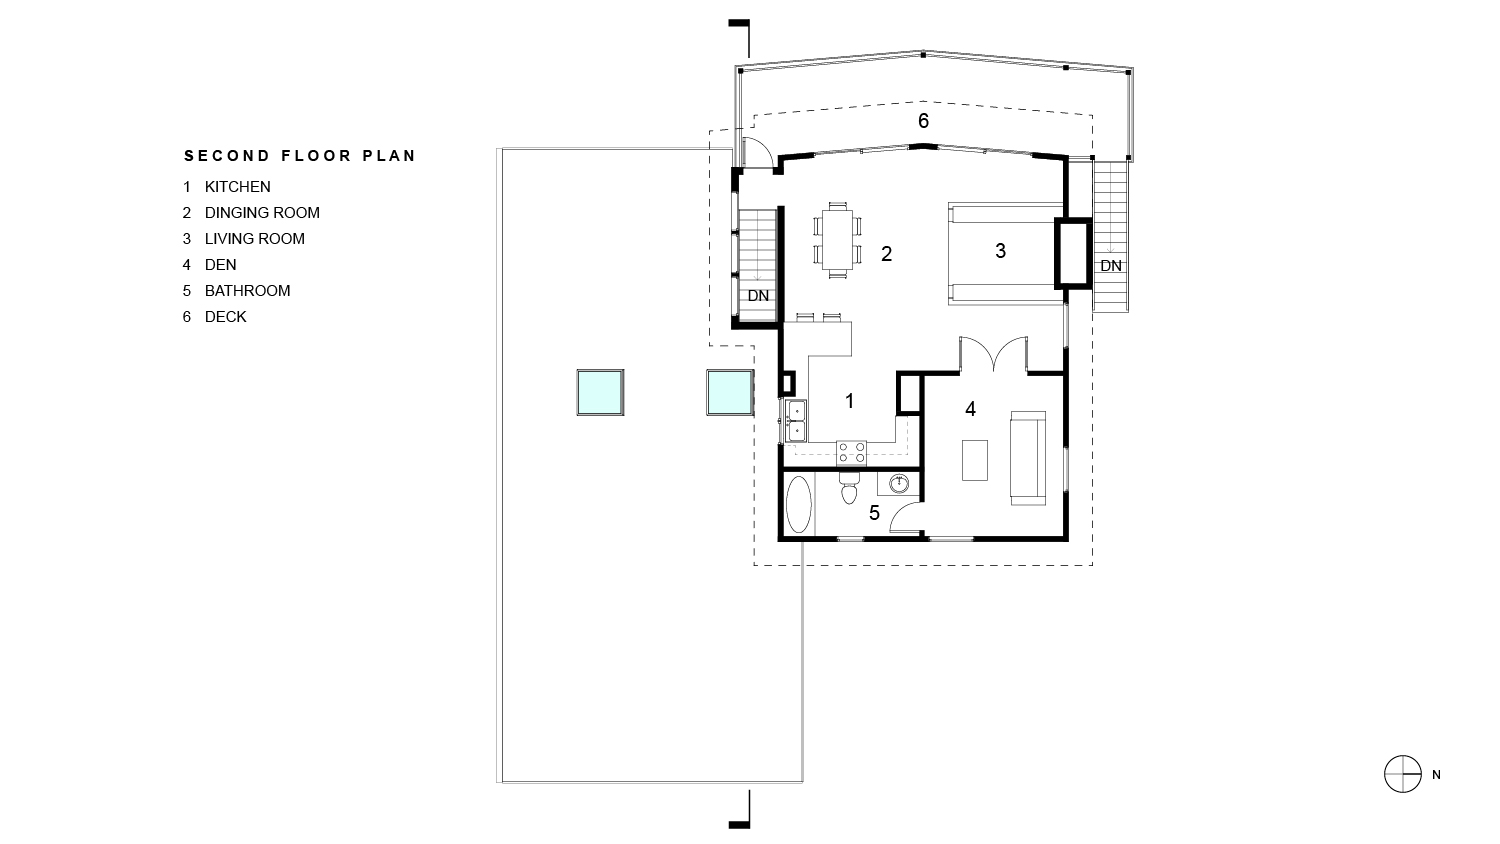 Tubman Residence Second Floor Plan